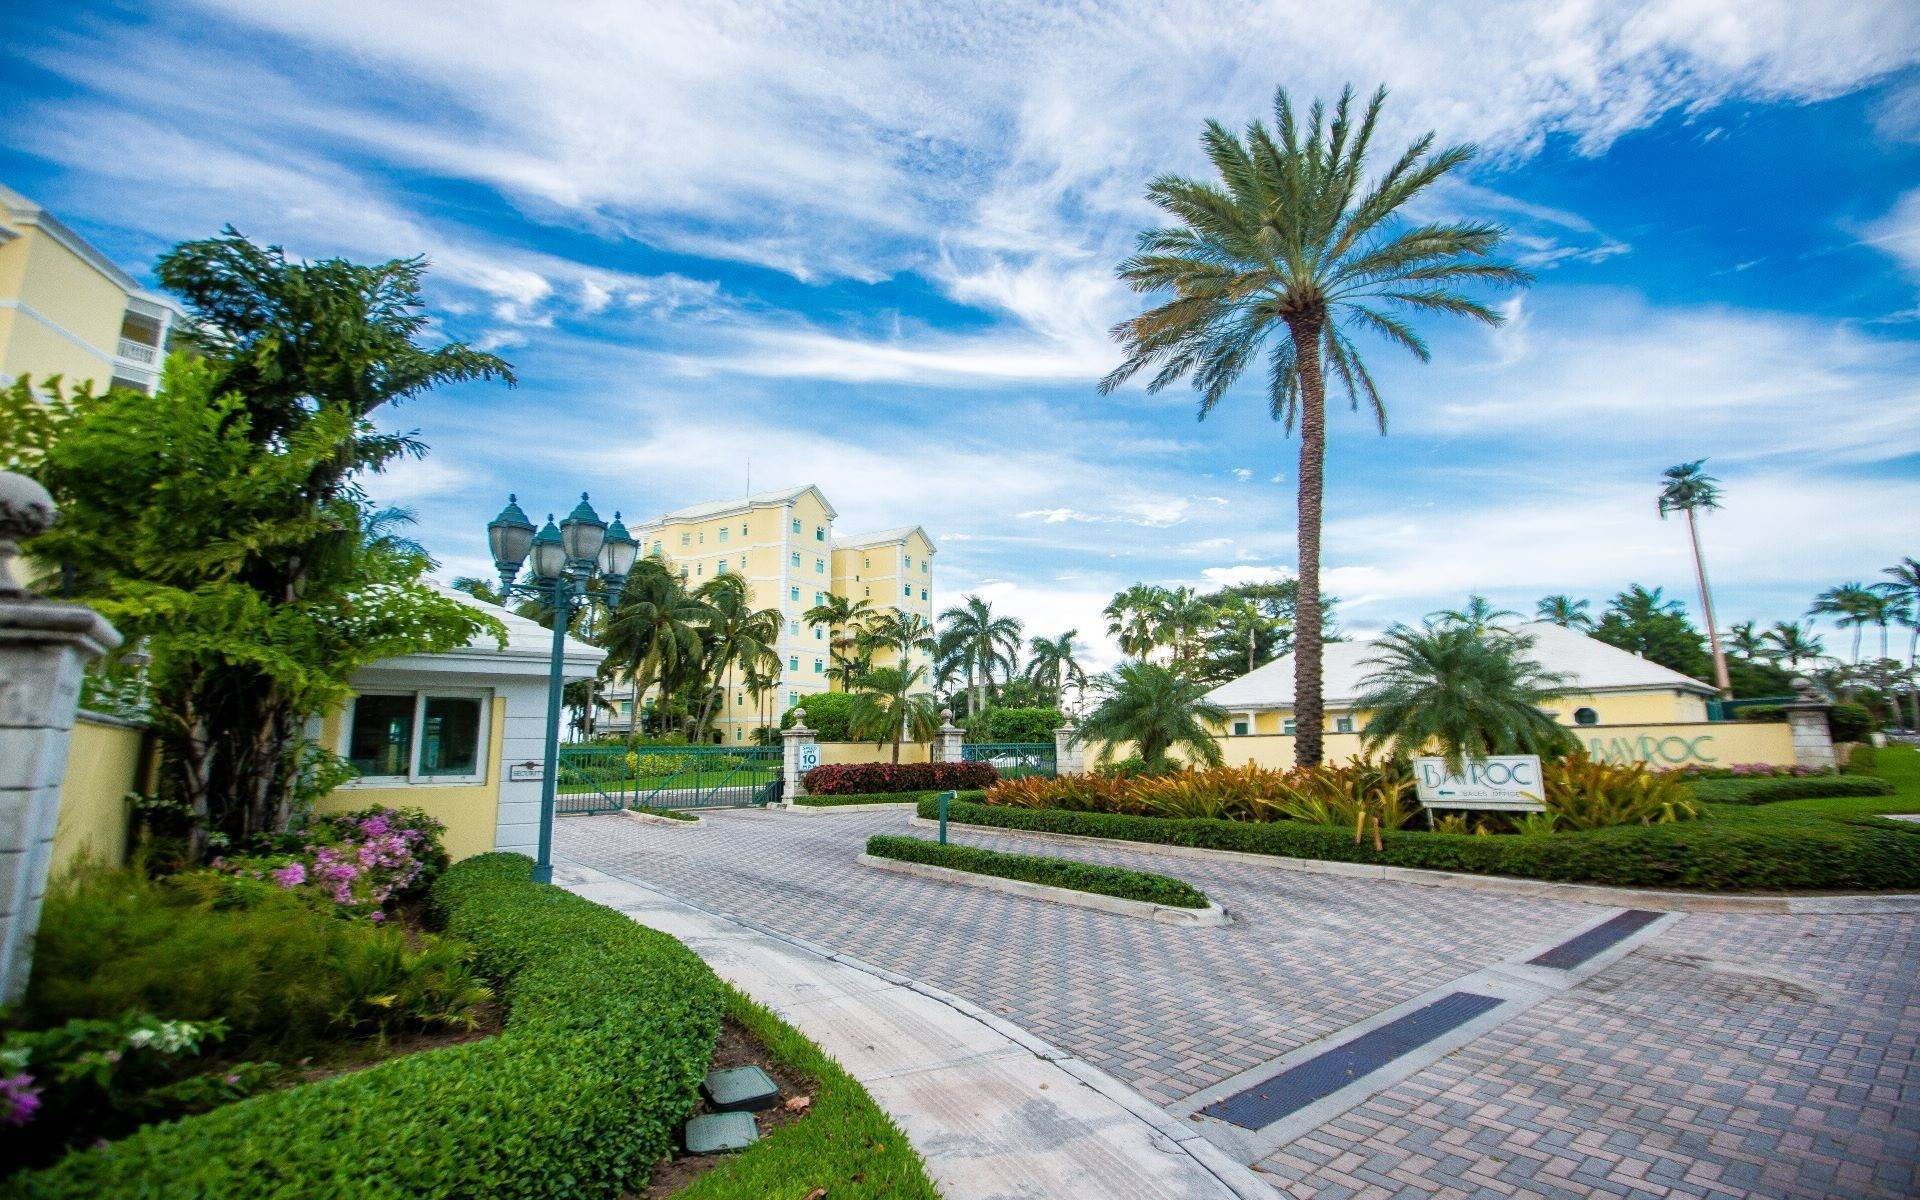 35. Condominium for Sale at Beautifully Appointed Beachfront Condo at Bayroc - MLS 42530 Nassau New Providence And Vicinity